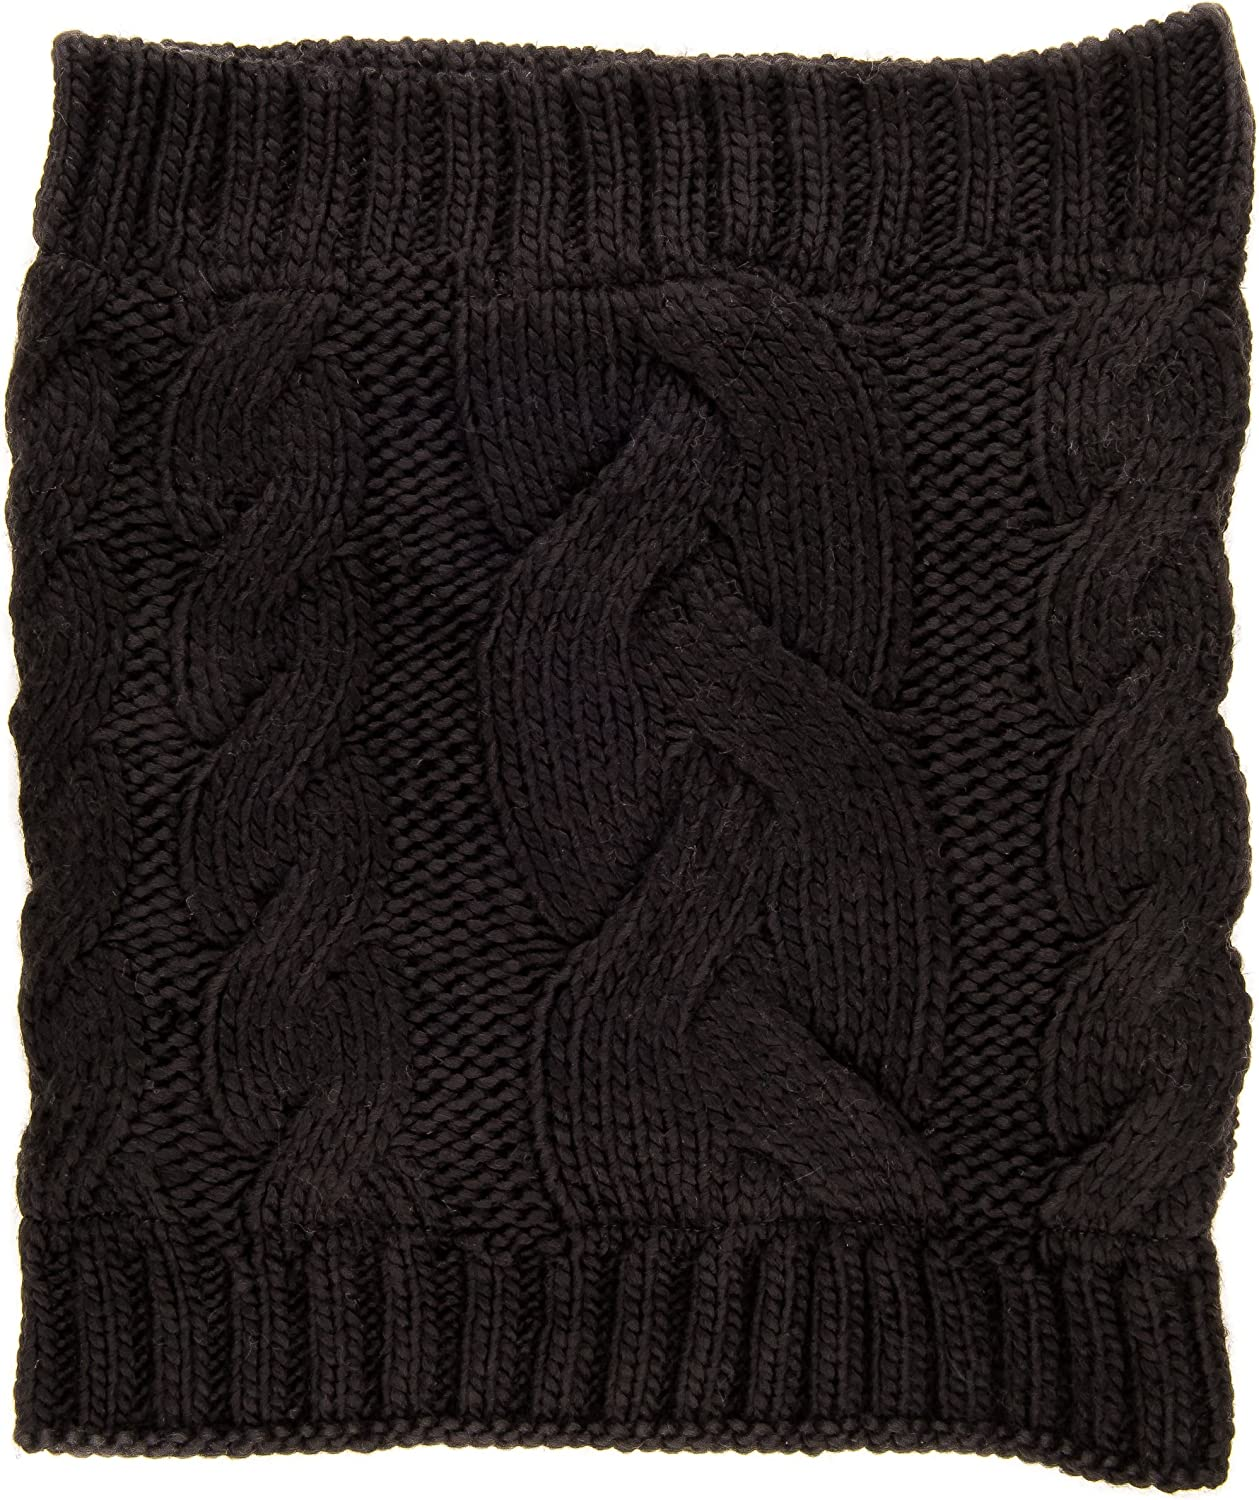 Noble Mount Mens Cable Knit Toaster Snood Scarf